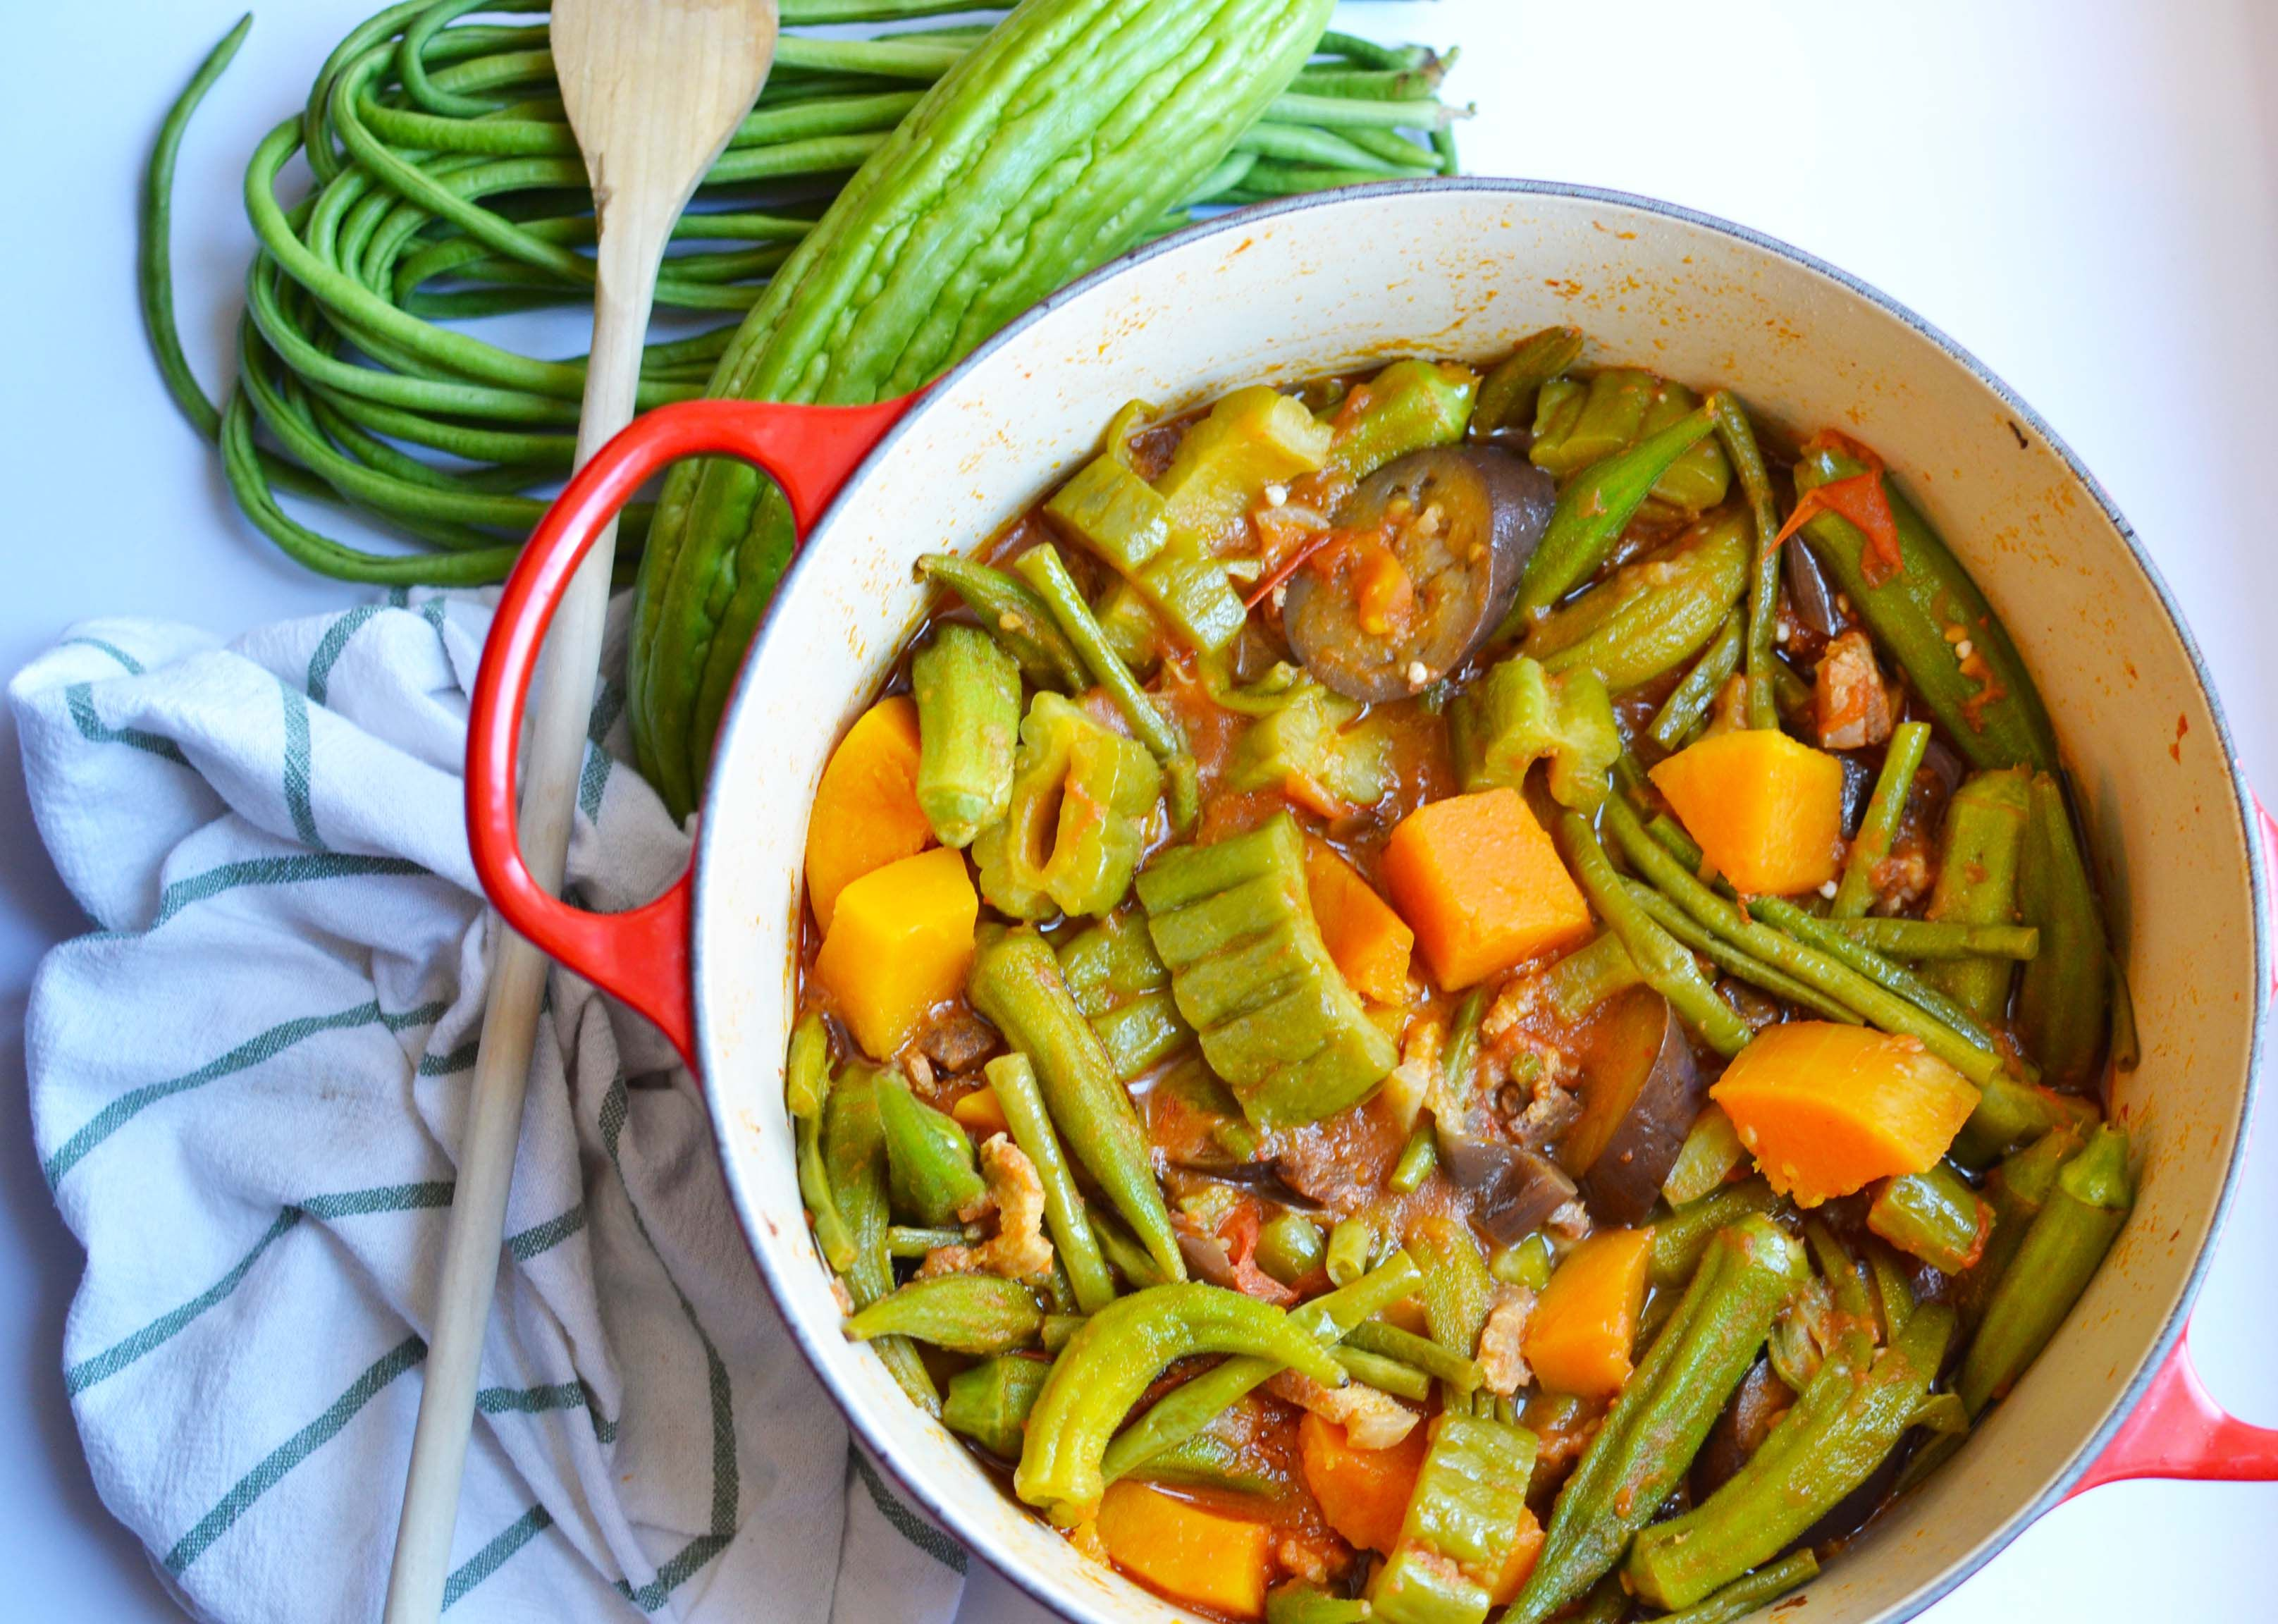 Toronto food blog with easy simple and the best recipes anyone can toronto food blog with easy simple and the best recipes anyone can make a food blog bringing you a traditional filipino recipe pinakbet filipin forumfinder Choice Image